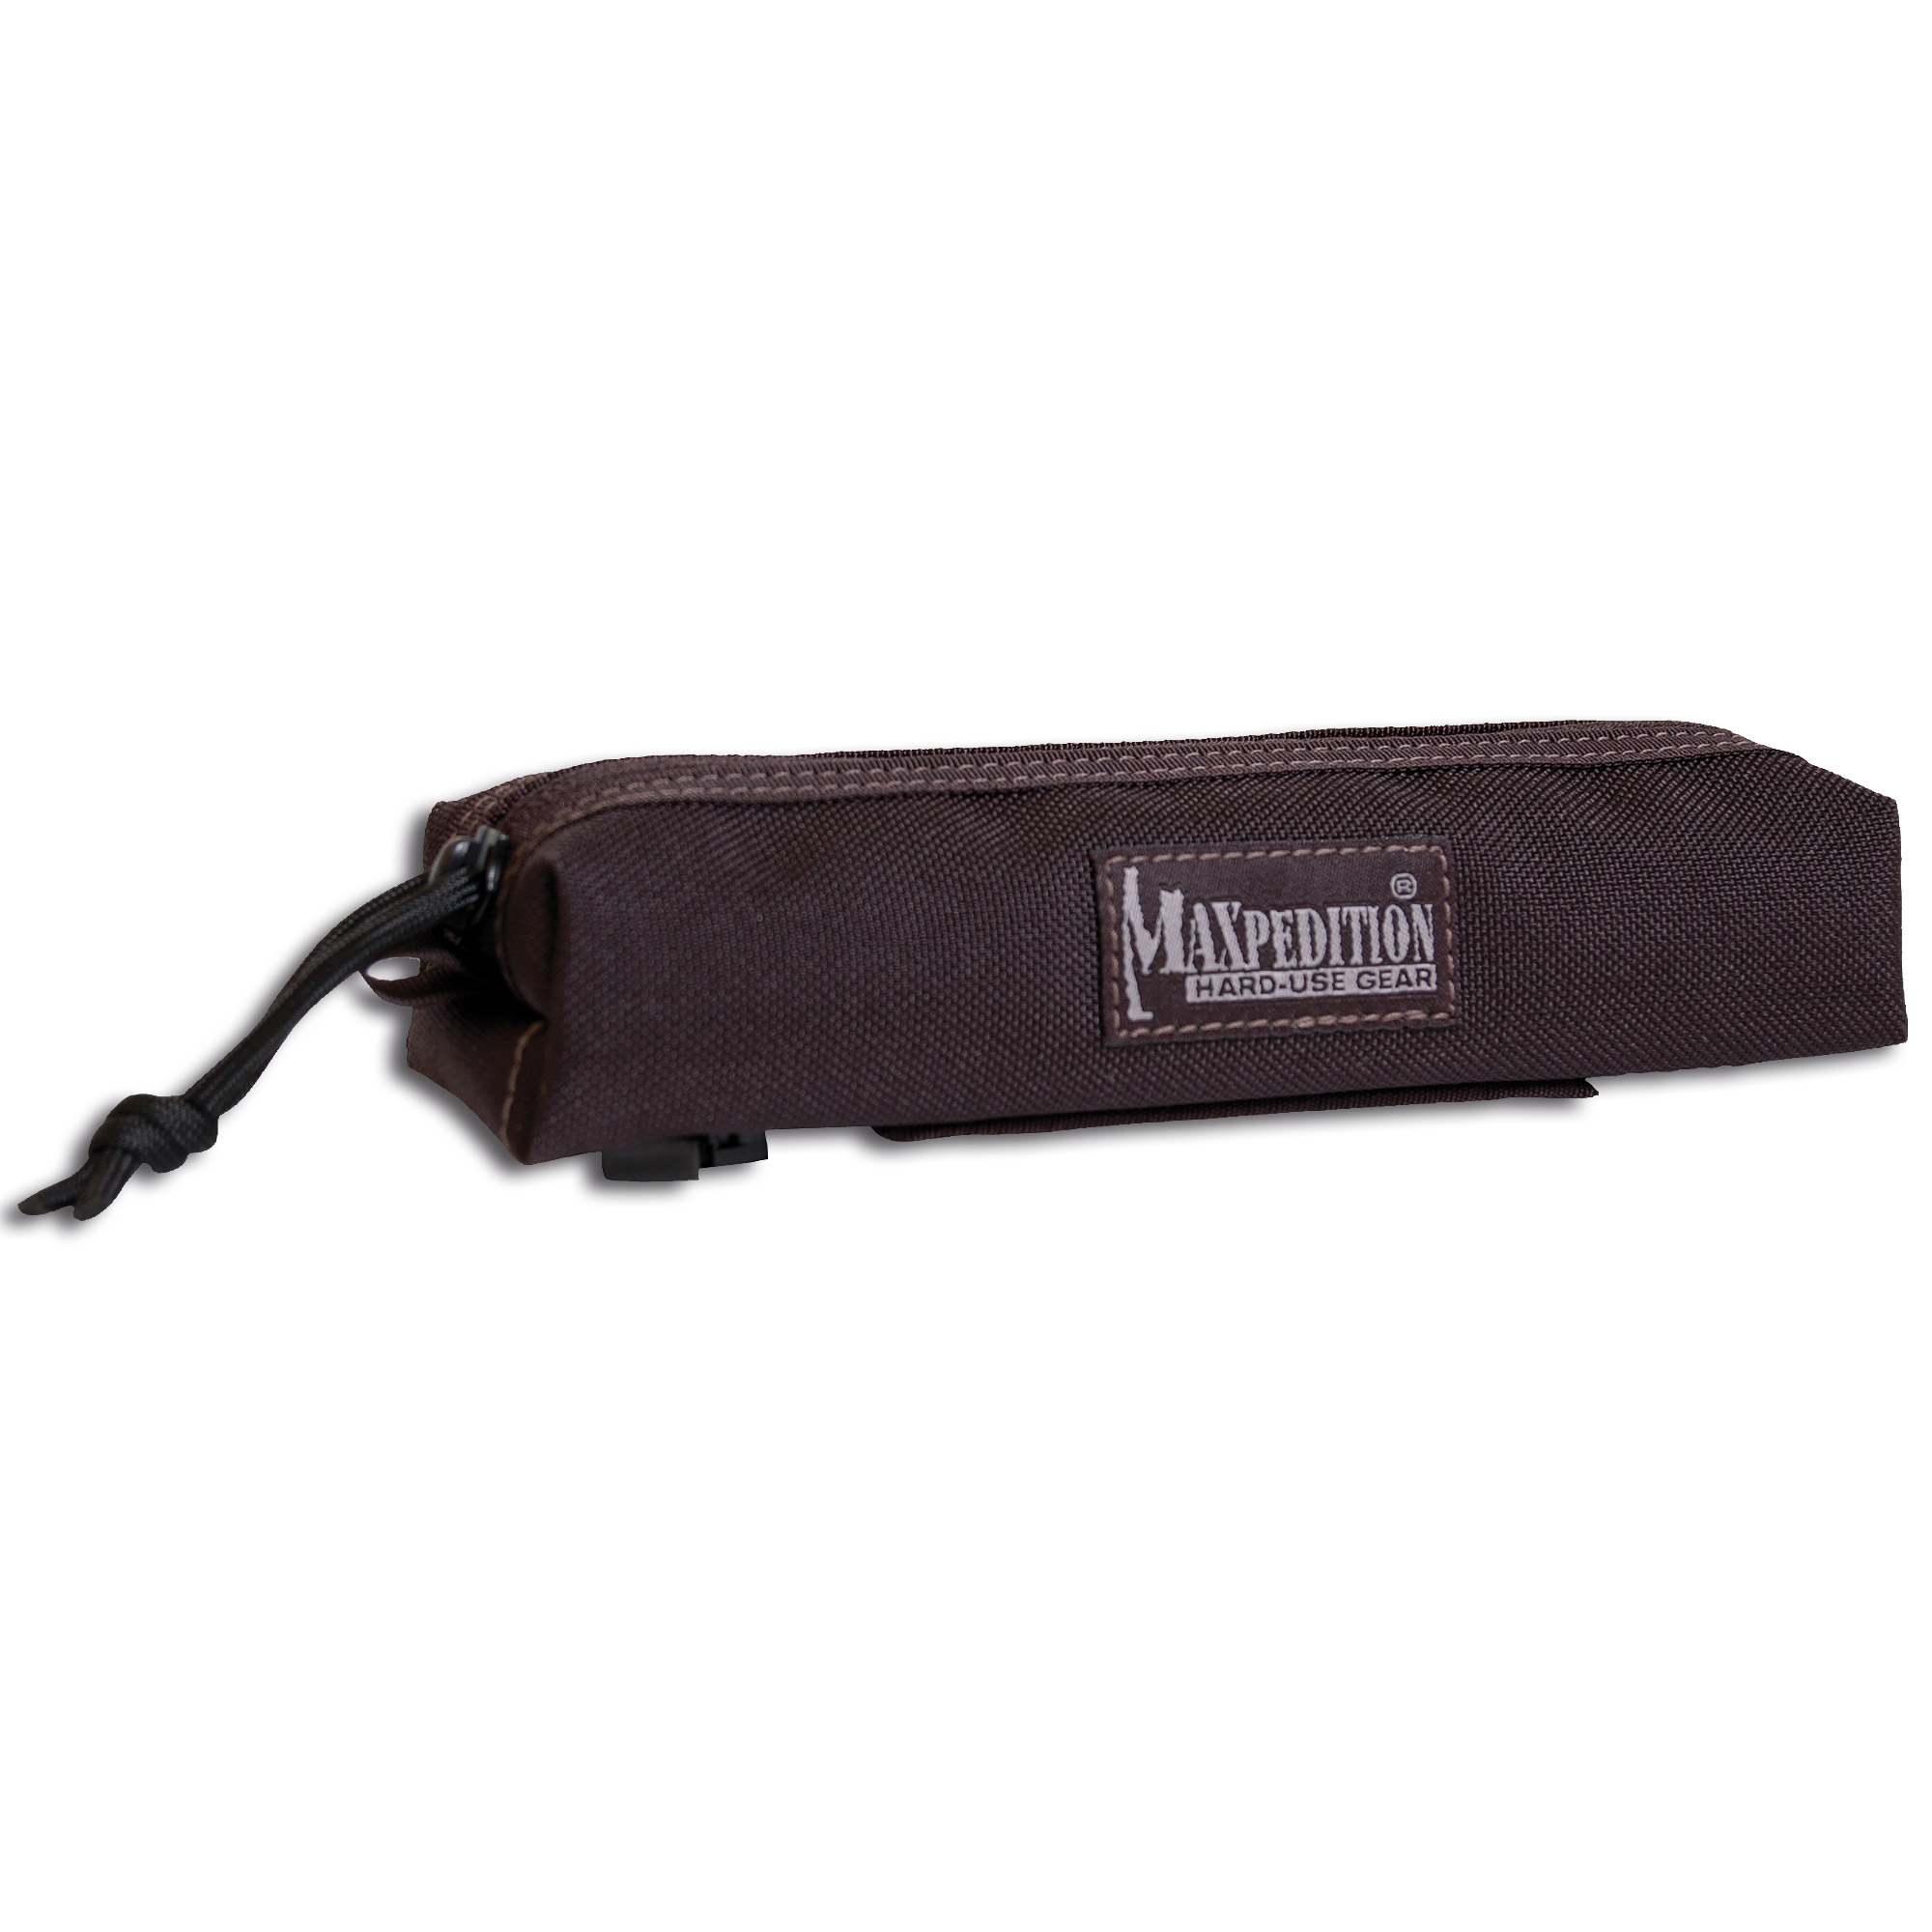 Maxpedition Cocoon Pouch schwarz